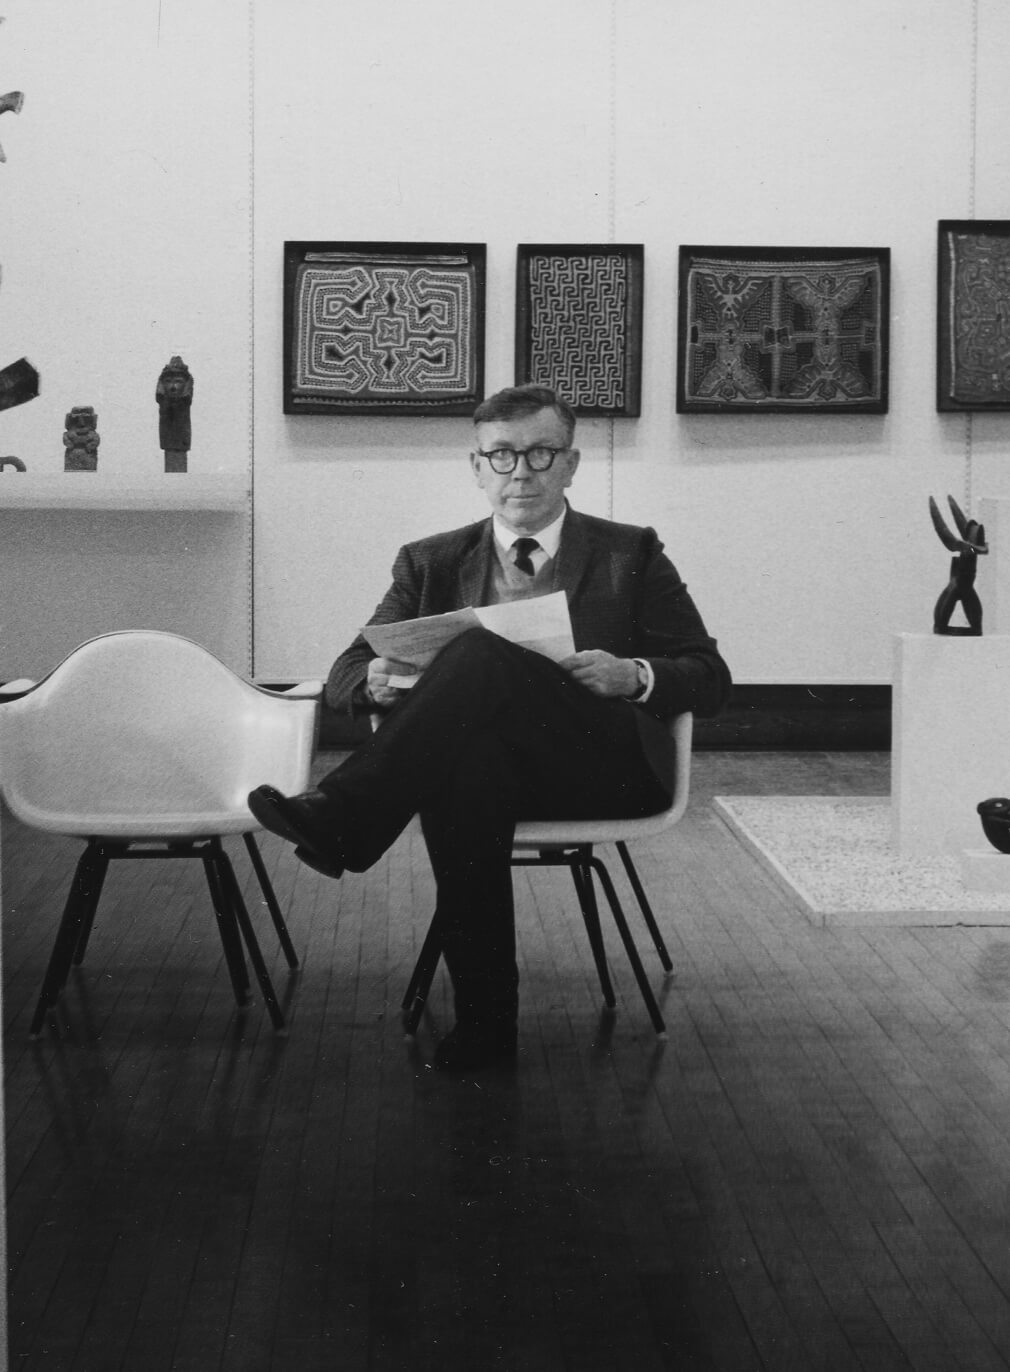 George Rickey in the Newcomb College Art Gallery, Tulane University, New Orleans, LA, c. 1956